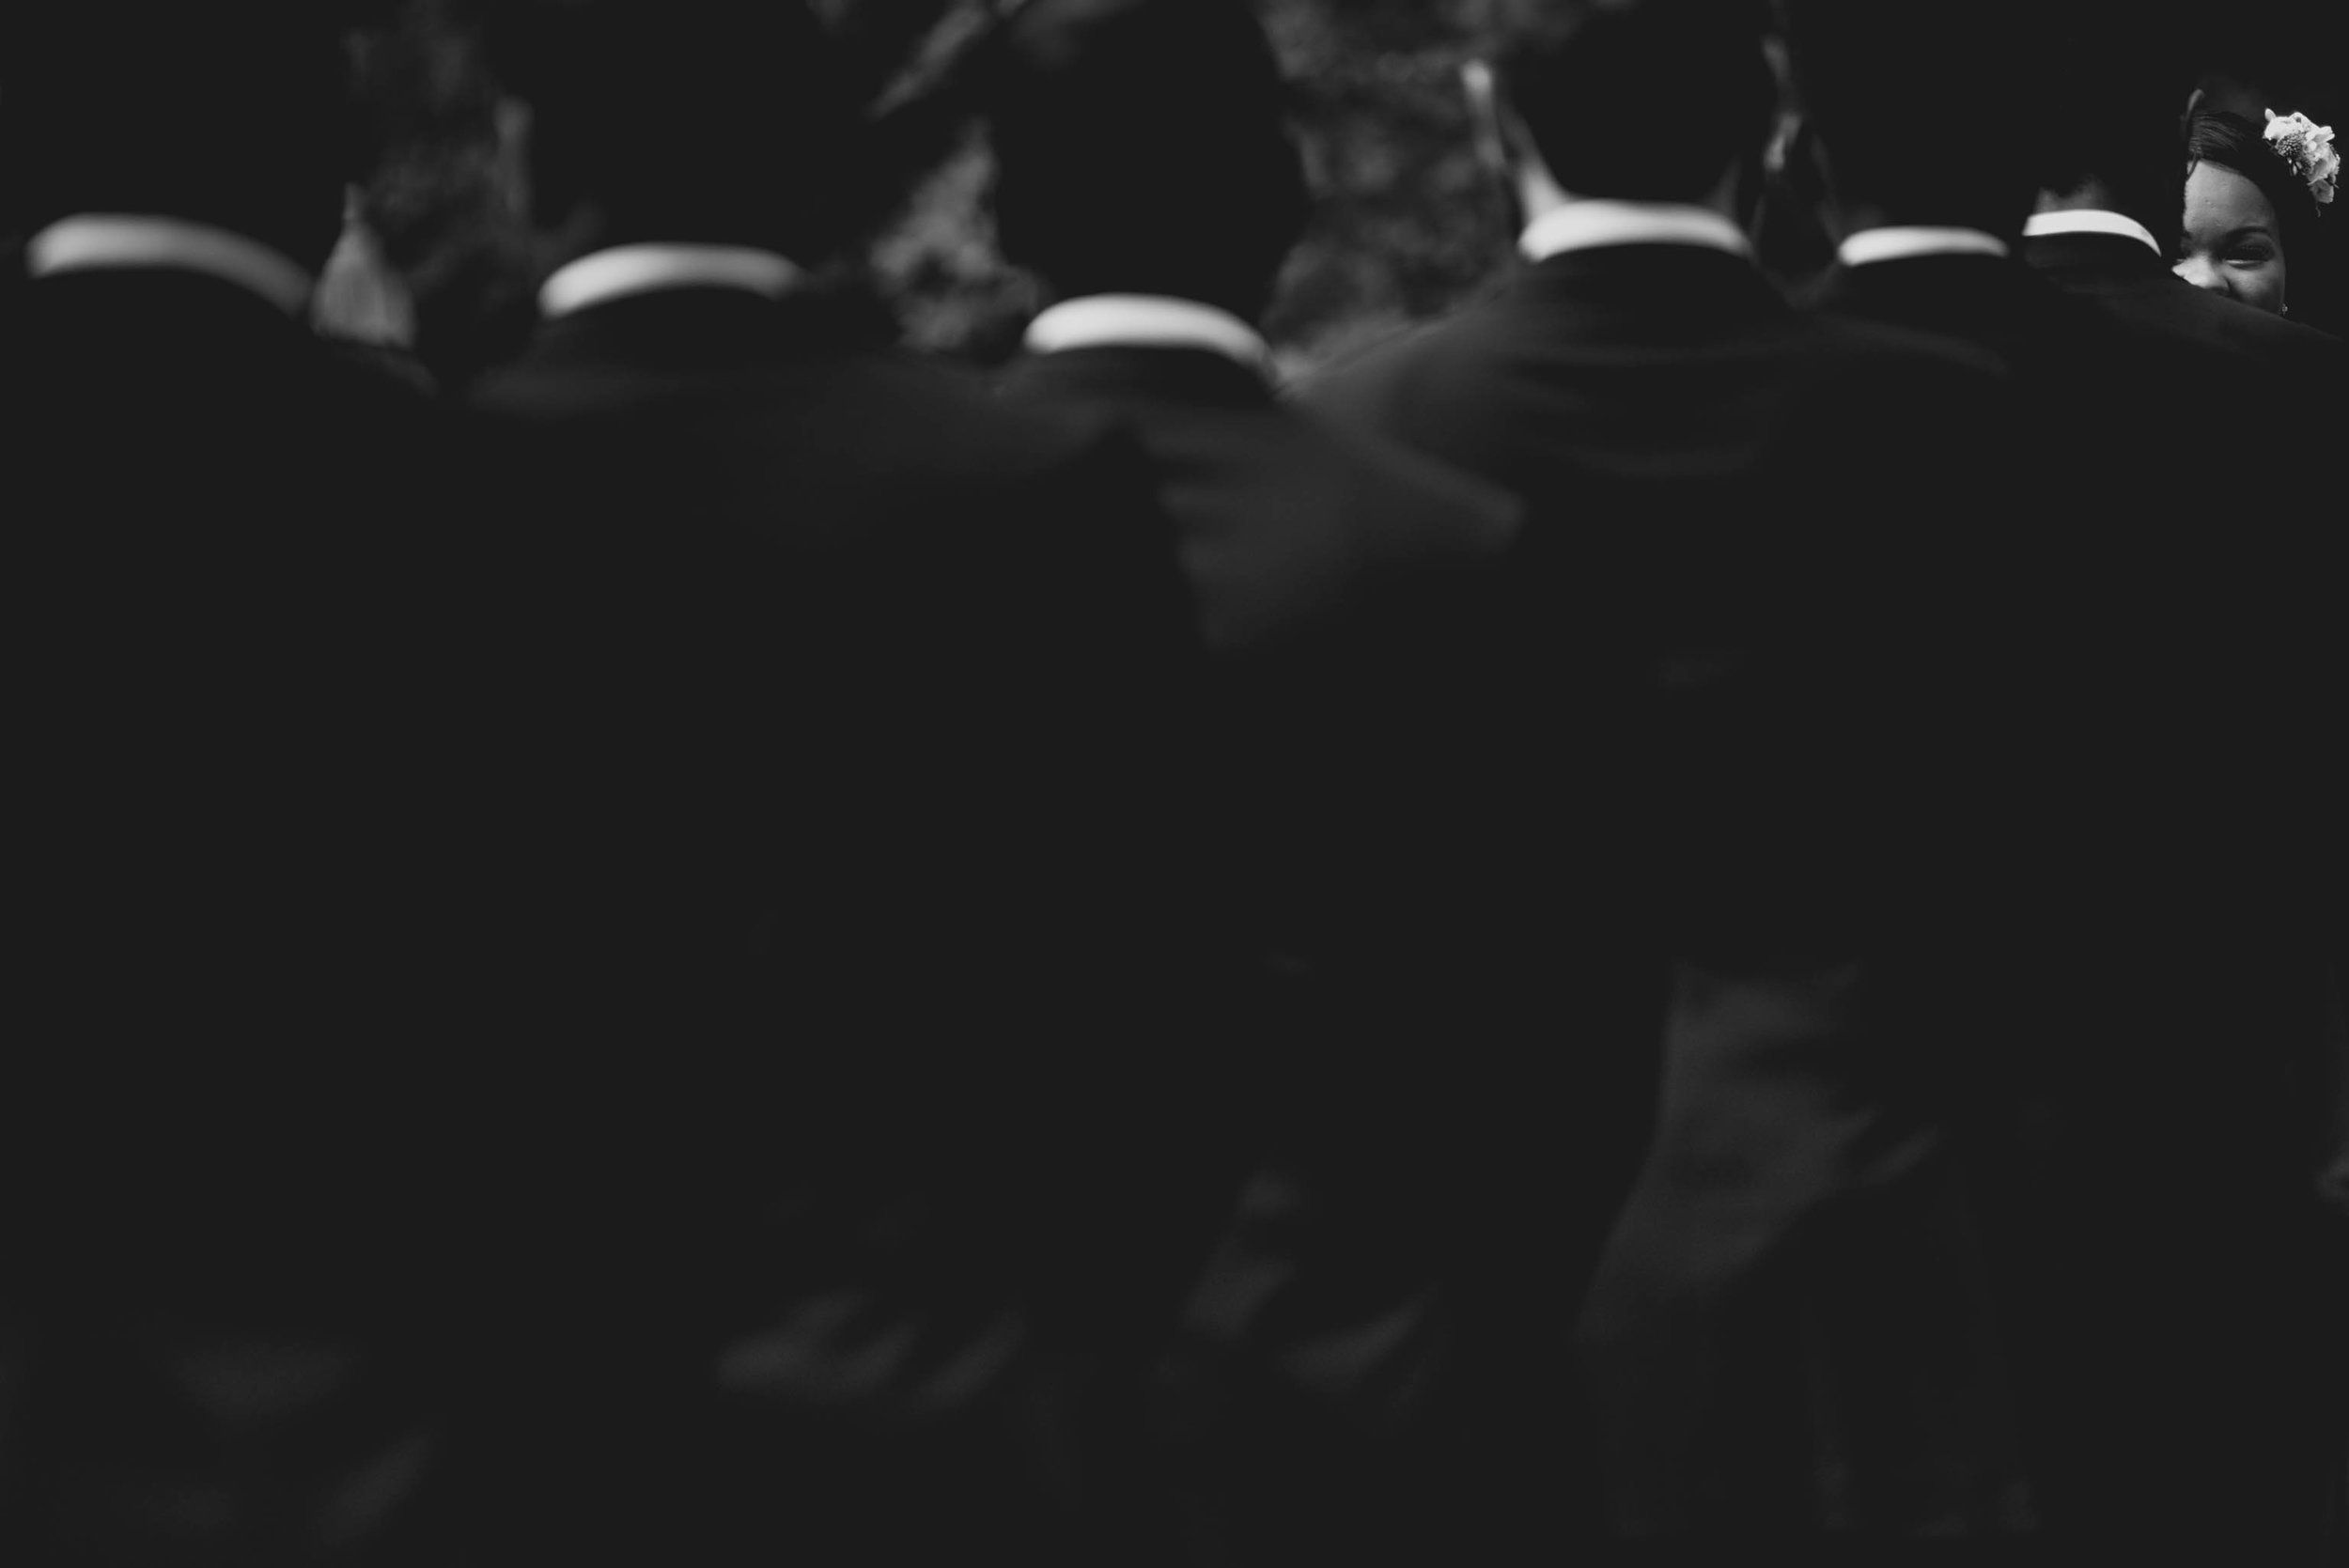 The groomsmen all lined up with the bride at the end during this beautiful wedding ceremony